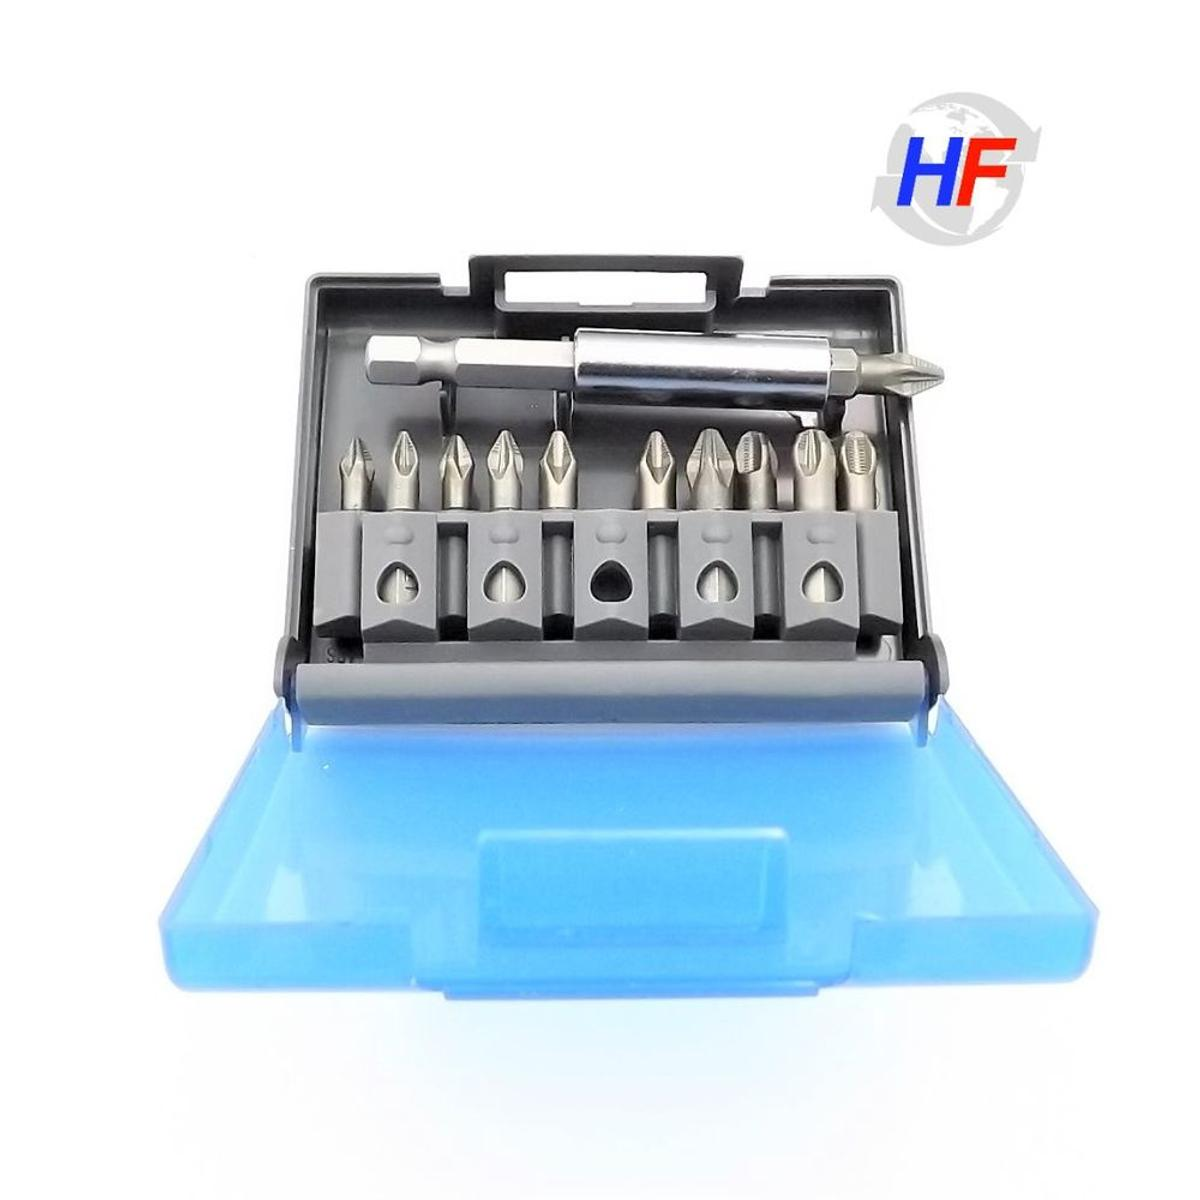 PH2 Silverline Anti-Slip S2 Screwdriver Bit Set PH1 PZ3 7 Piece PH3 PZ1 PZ2